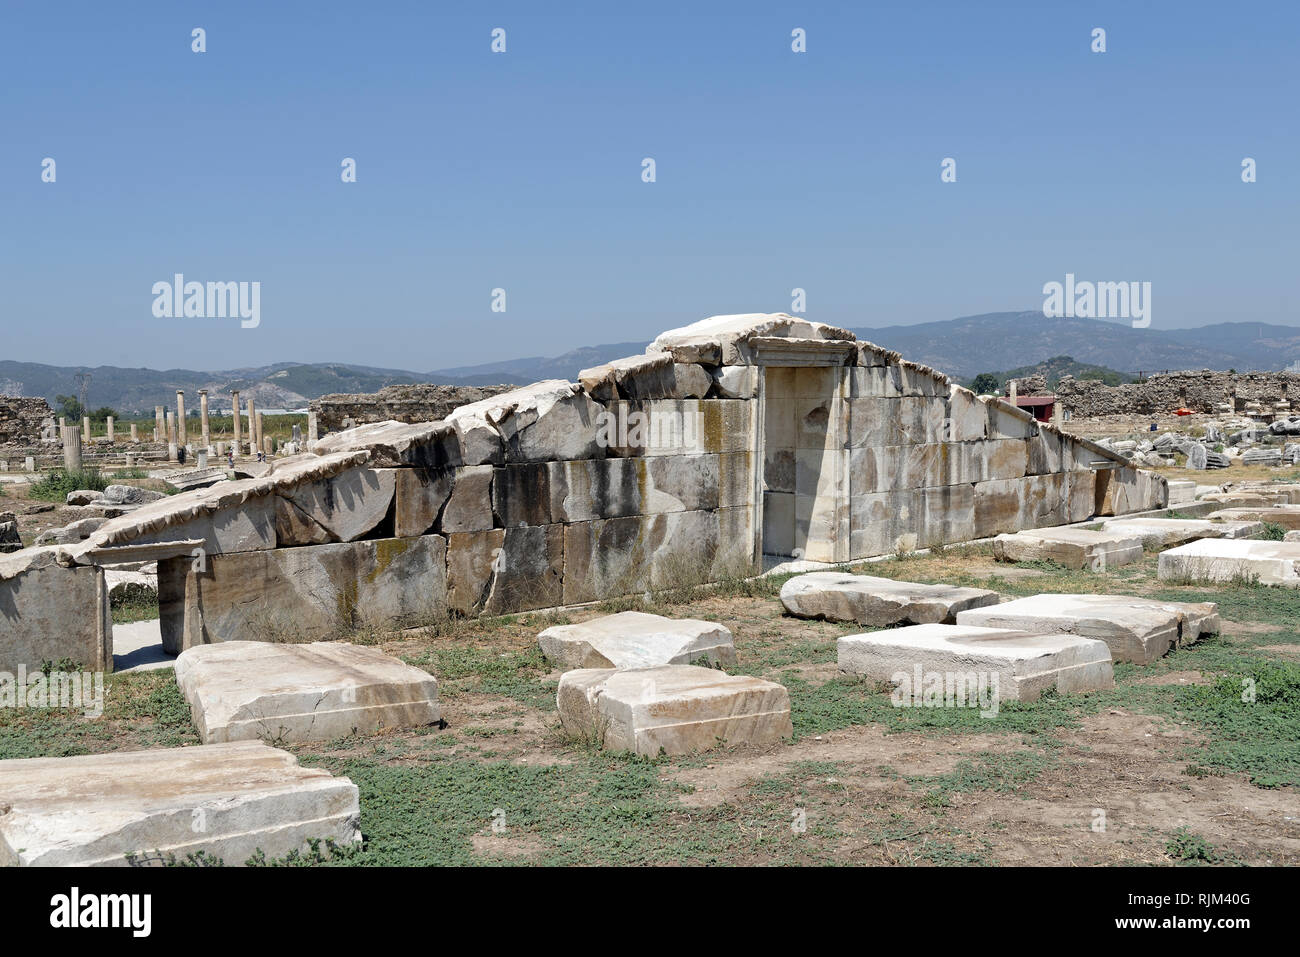 Resembled Pediment of the Hellenistic Temple of Artemis Leucopryne built in the second century BC, Magnesia on the Meander, Tekin, Ionia, Turkey. The  - Stock Image